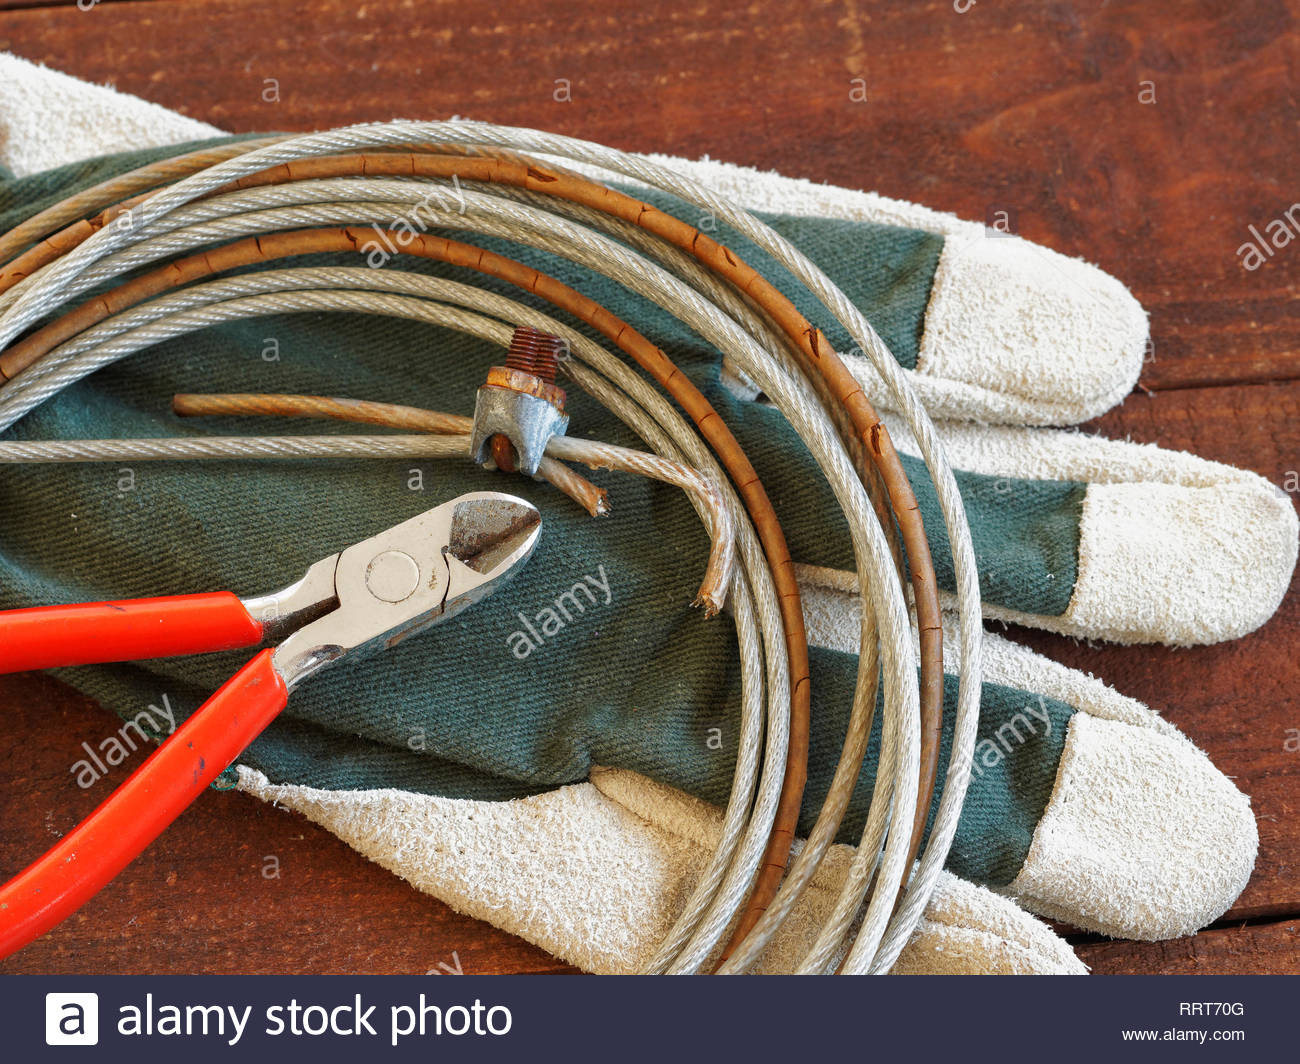 Wire cutters with work gloves and roll of rusty wire on dark wooden background Stock Photo